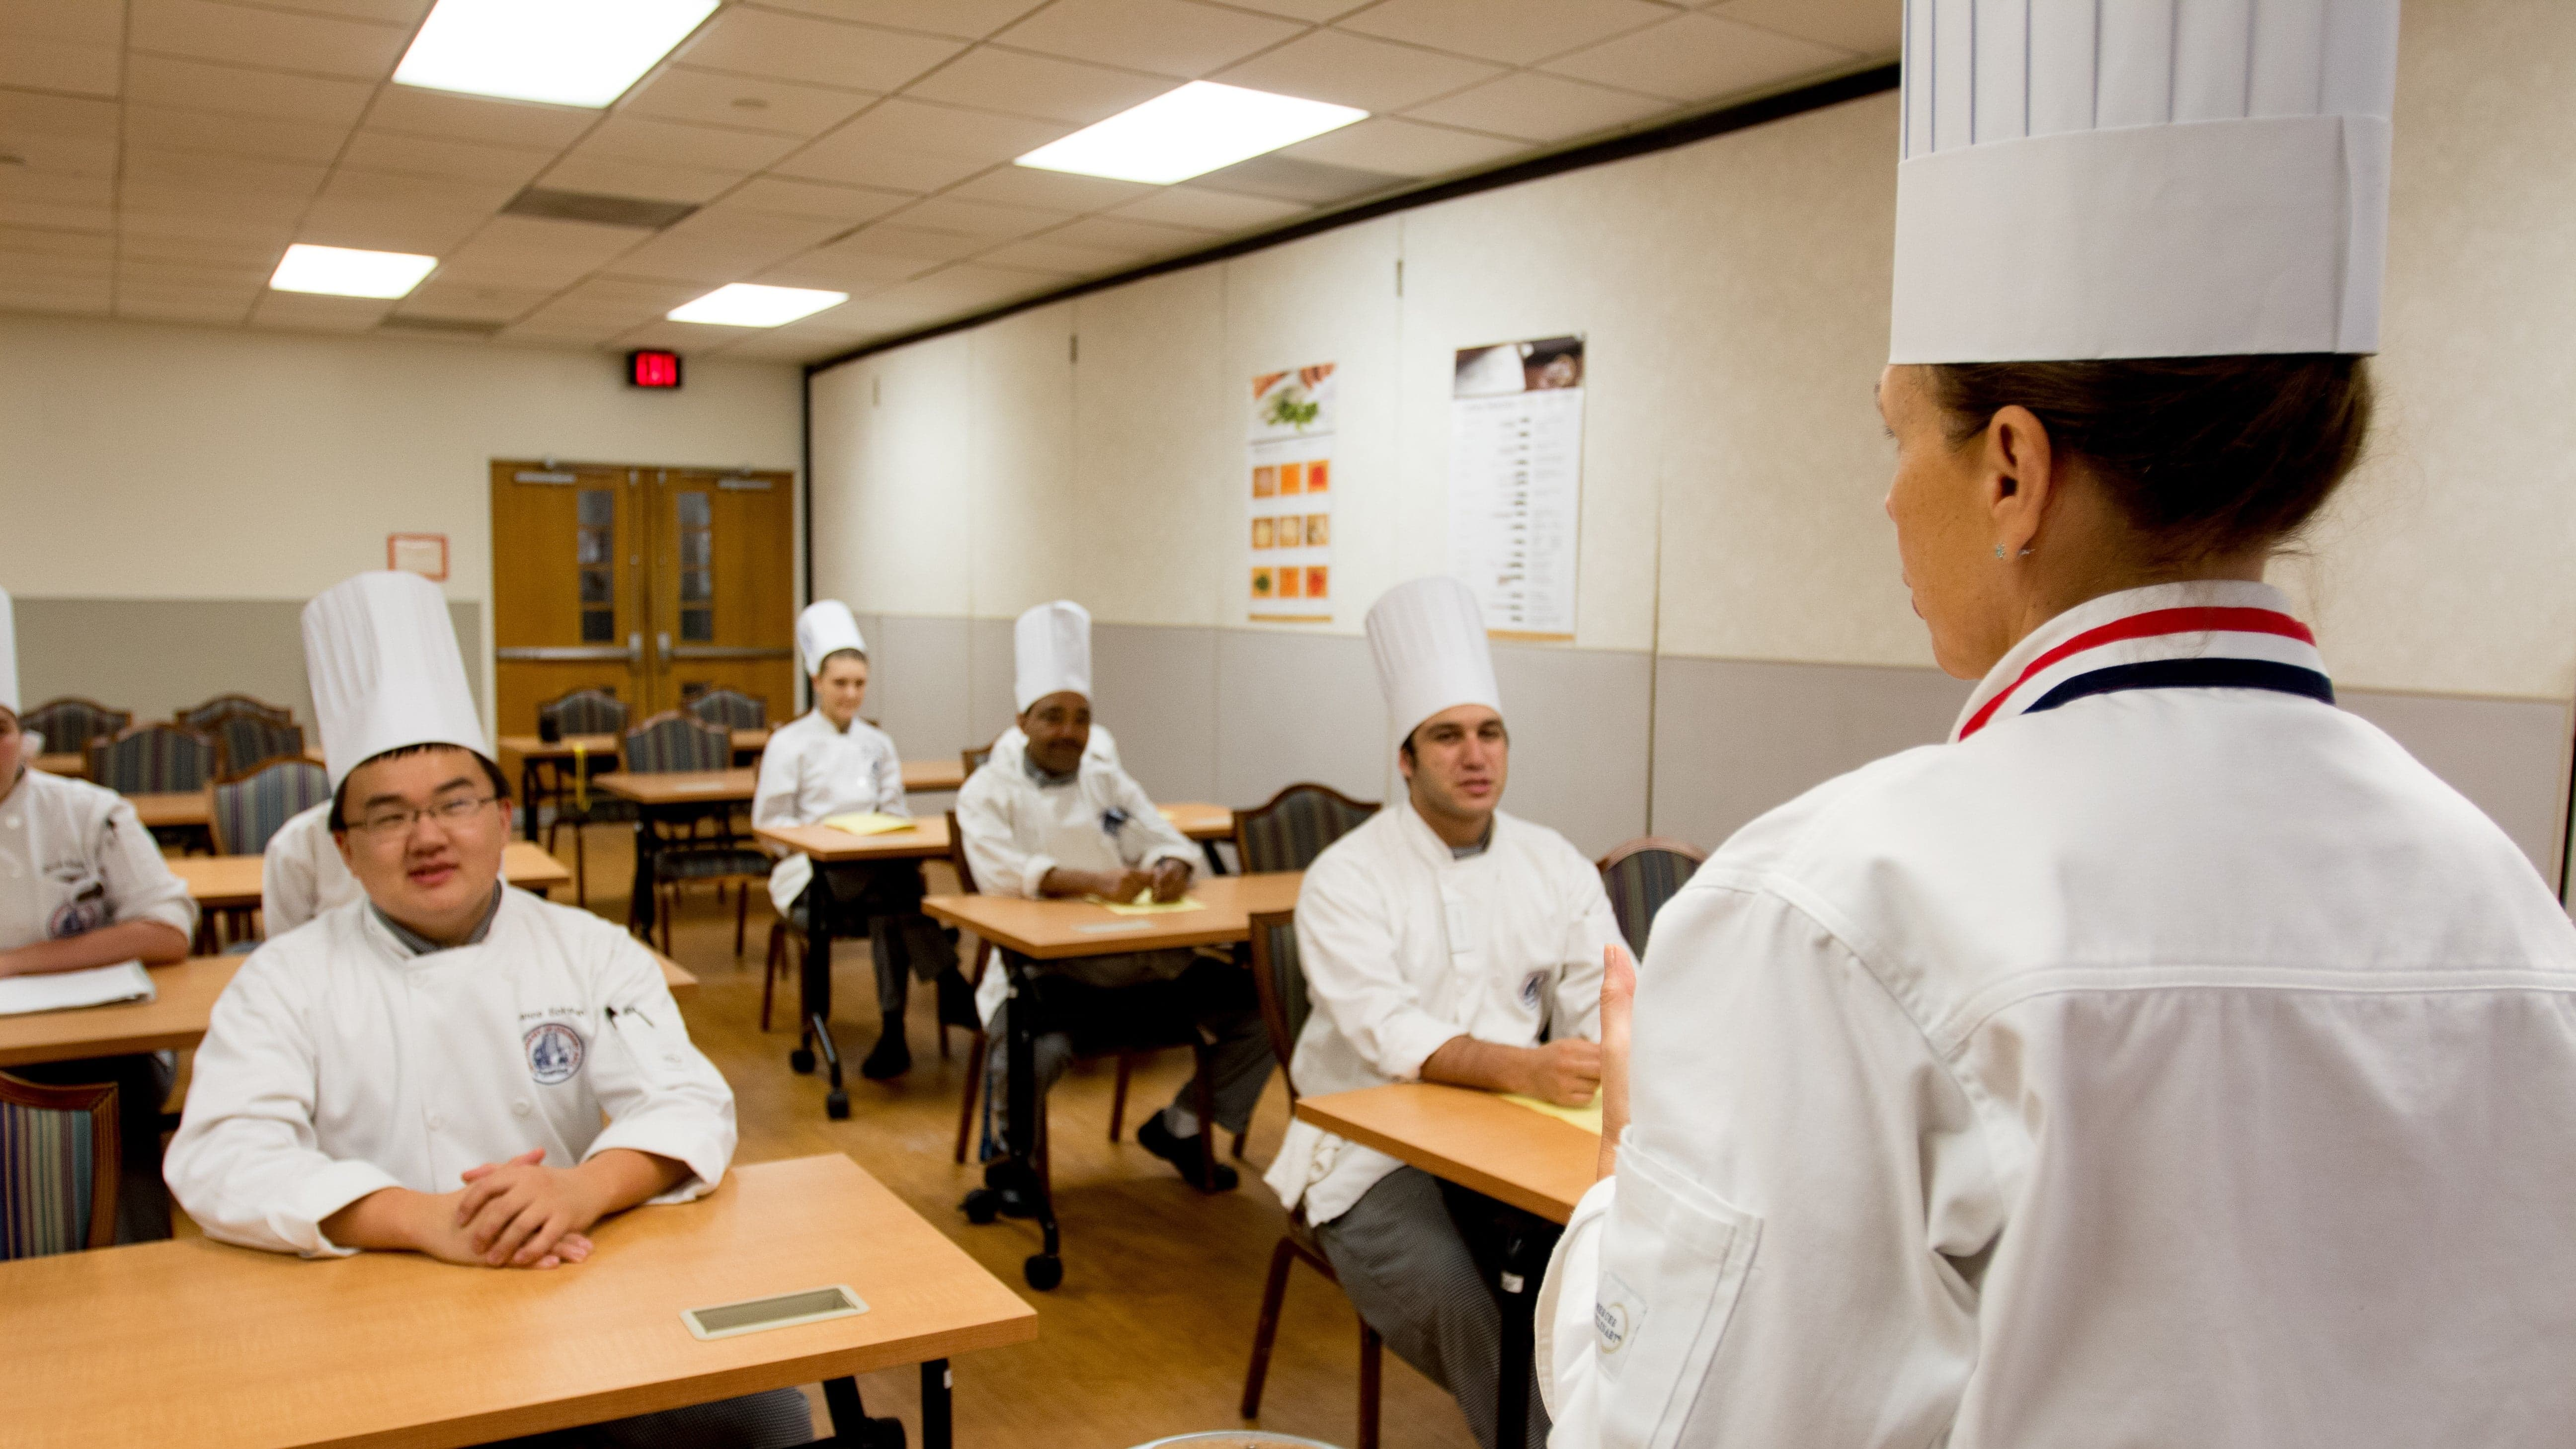 Chefs being taught in classroom